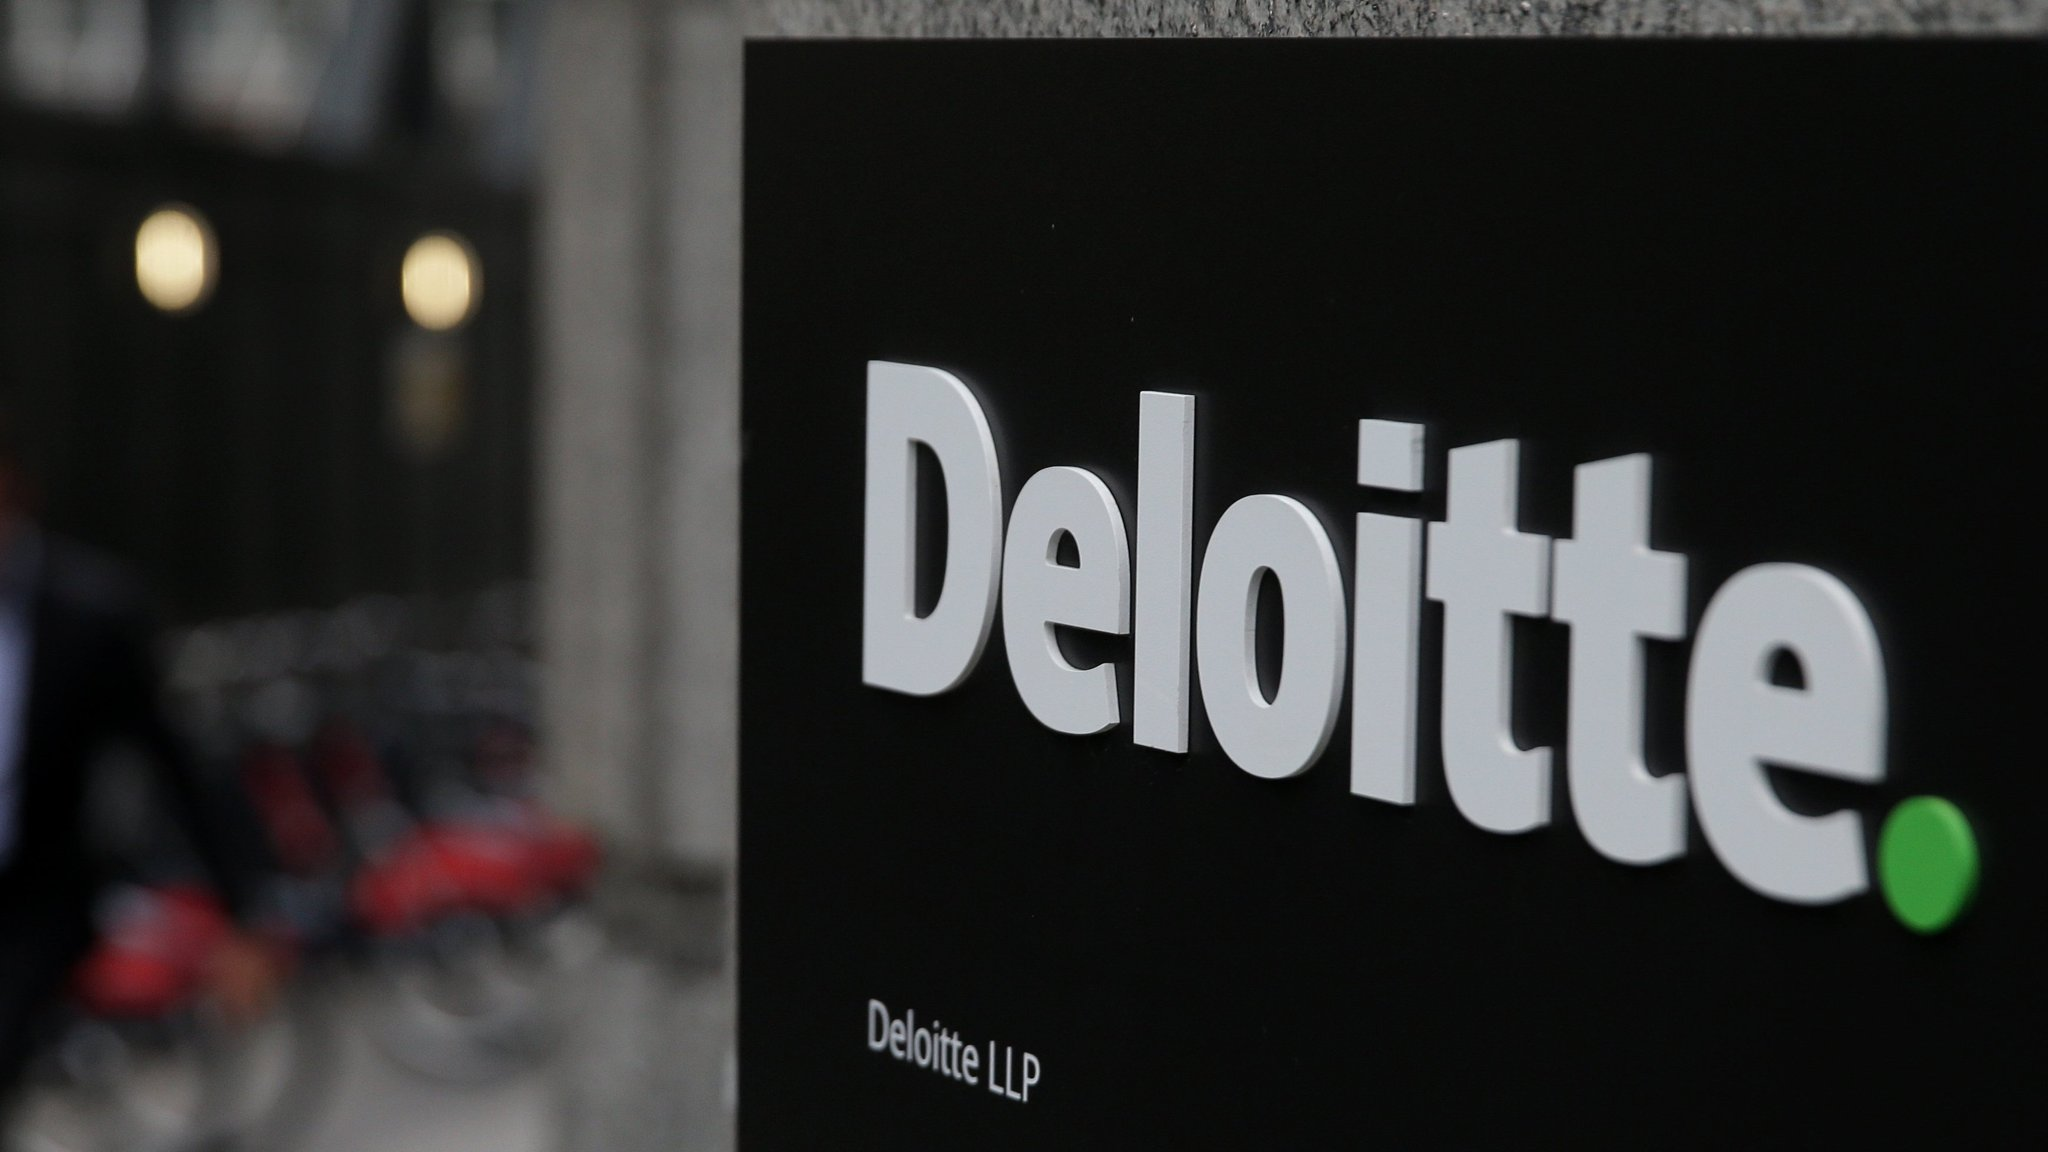 DELOITTE CONSULTING  - GBB proudly partners with Deloitte to increase impact on brigades! Deloitte consultants accompany our university volunteers to ensure higher quality business guidance for the community members while providing our students with valuable career insight.Website